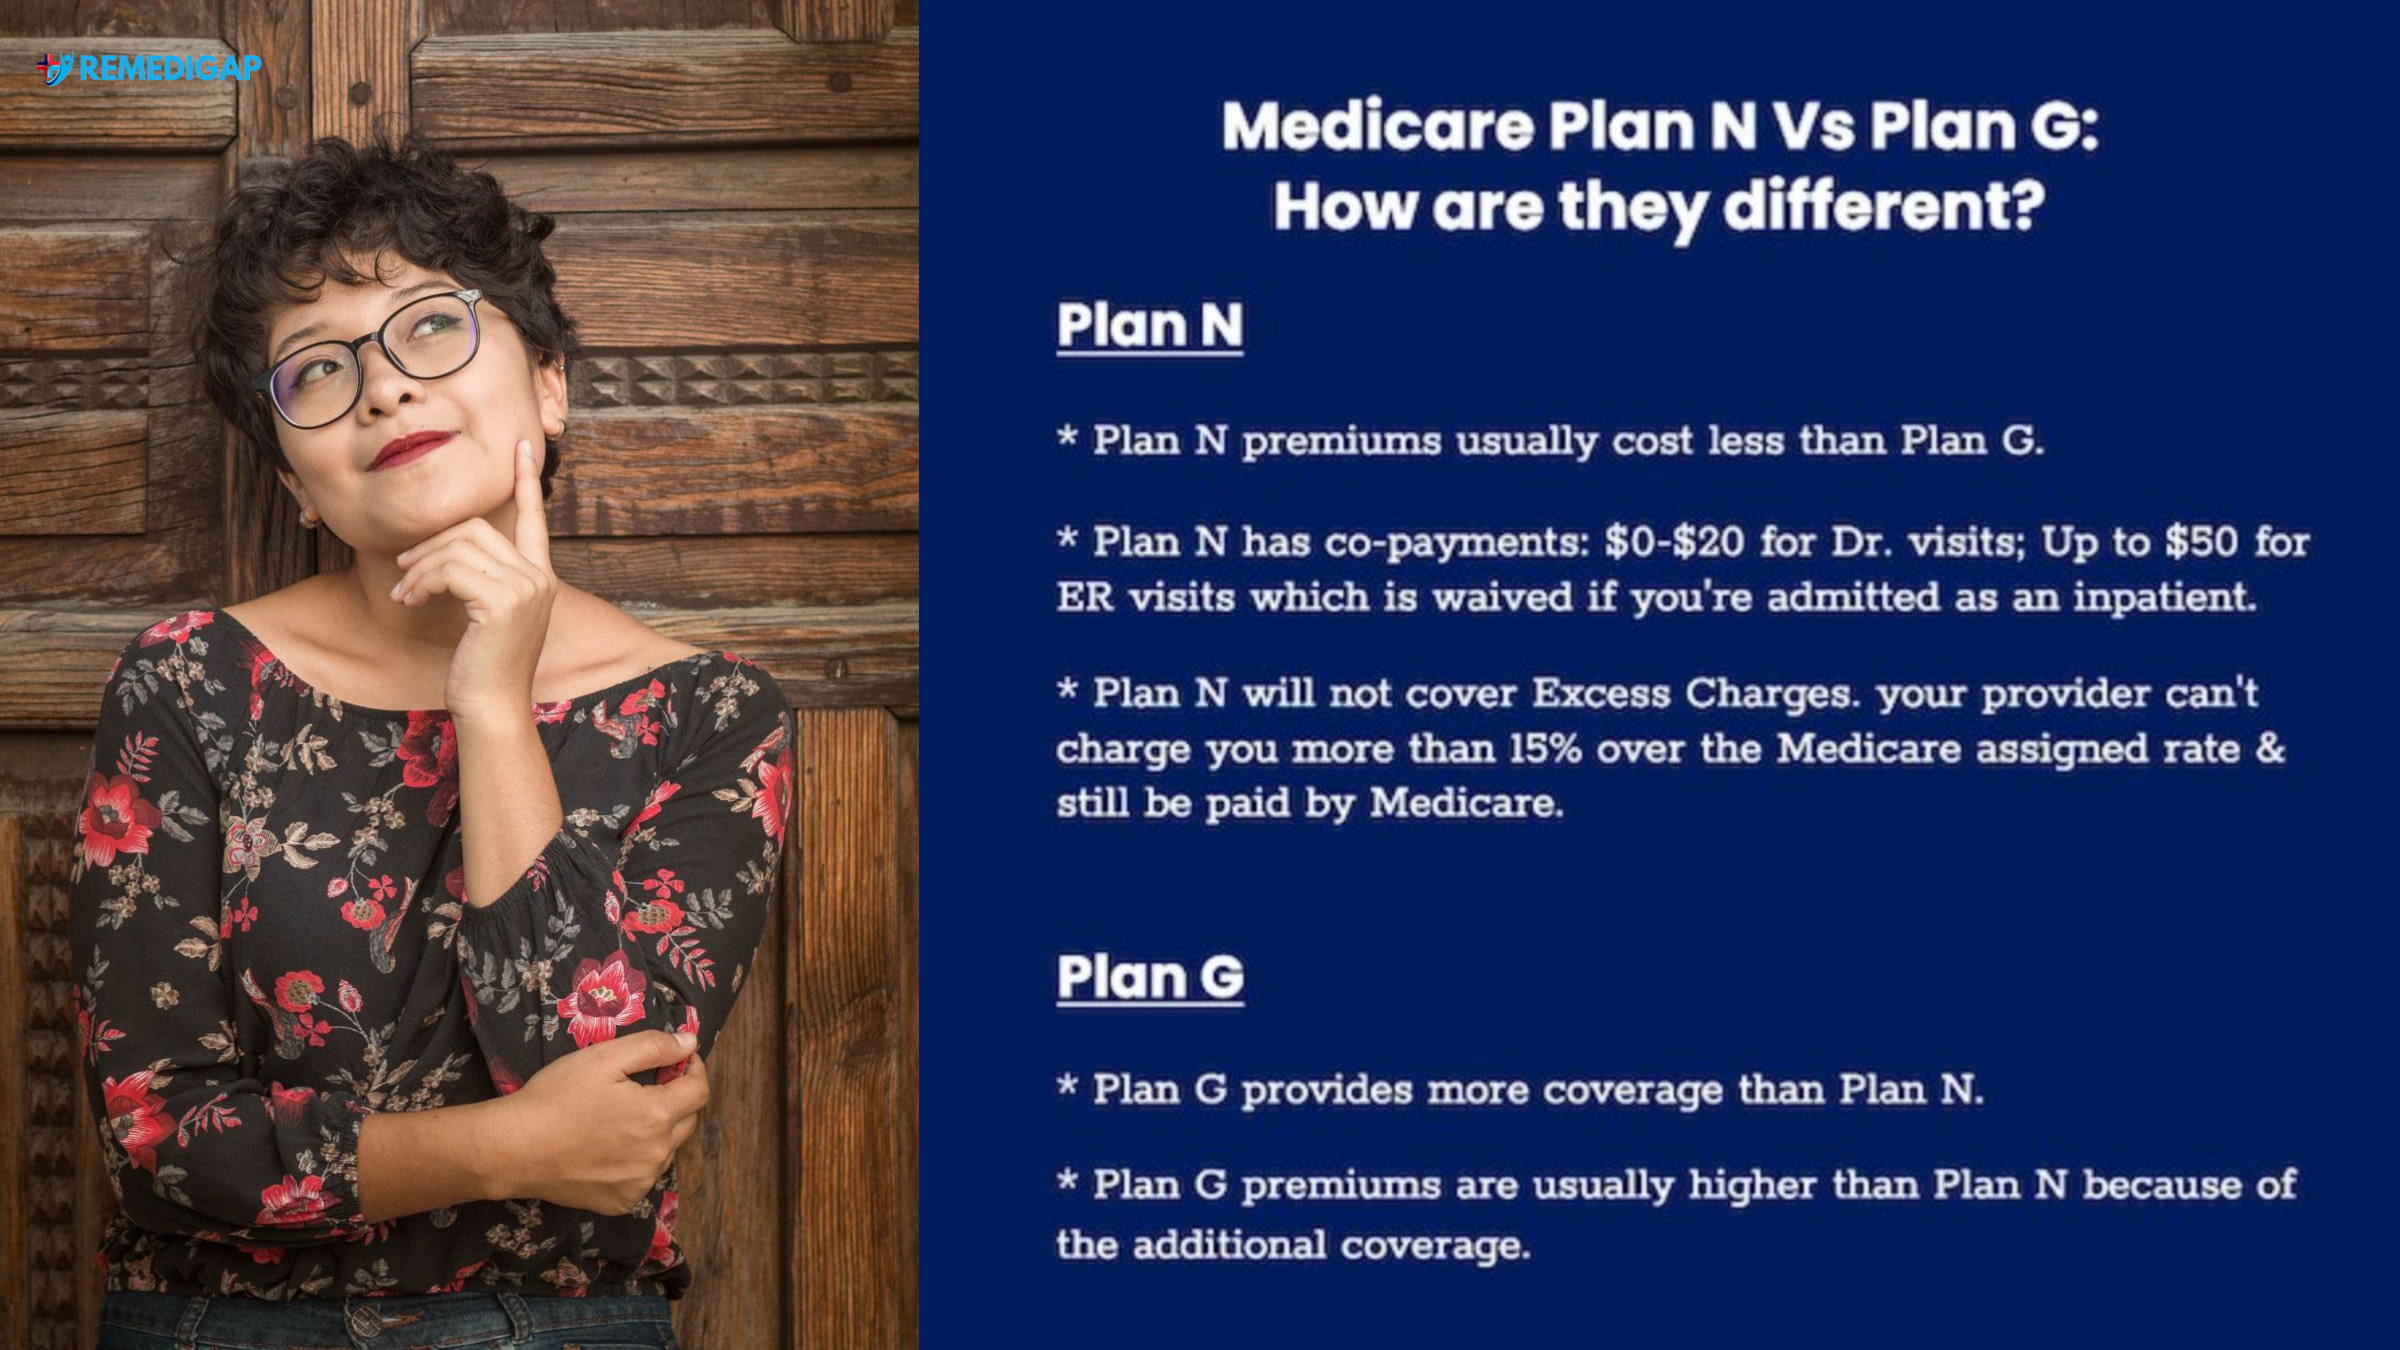 Medicare Plan N Vs Plan G